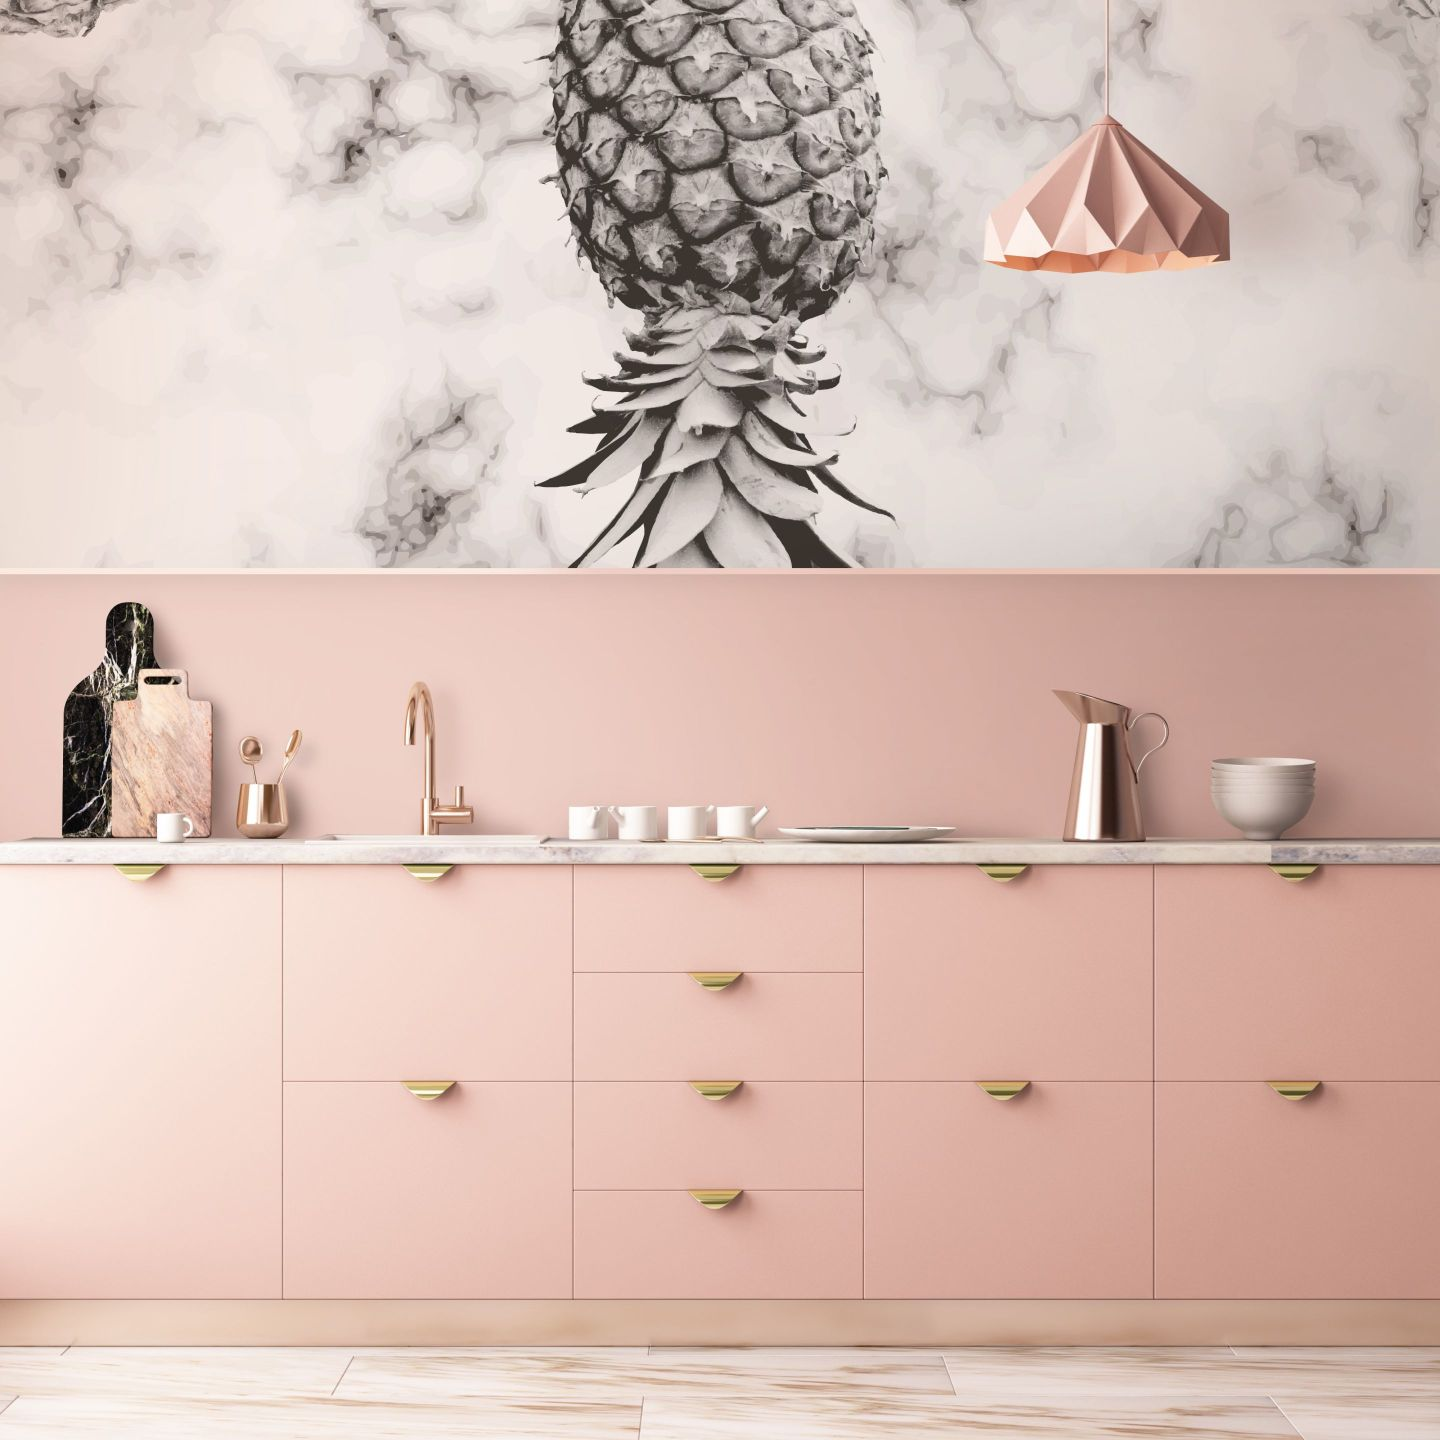 Pixers-Pineapple-Marble-Vinyl-Wall-Mural-2312837-1440x1440 Pineapple Decor: Tips for Decorating Your Home with Southern Hospitality